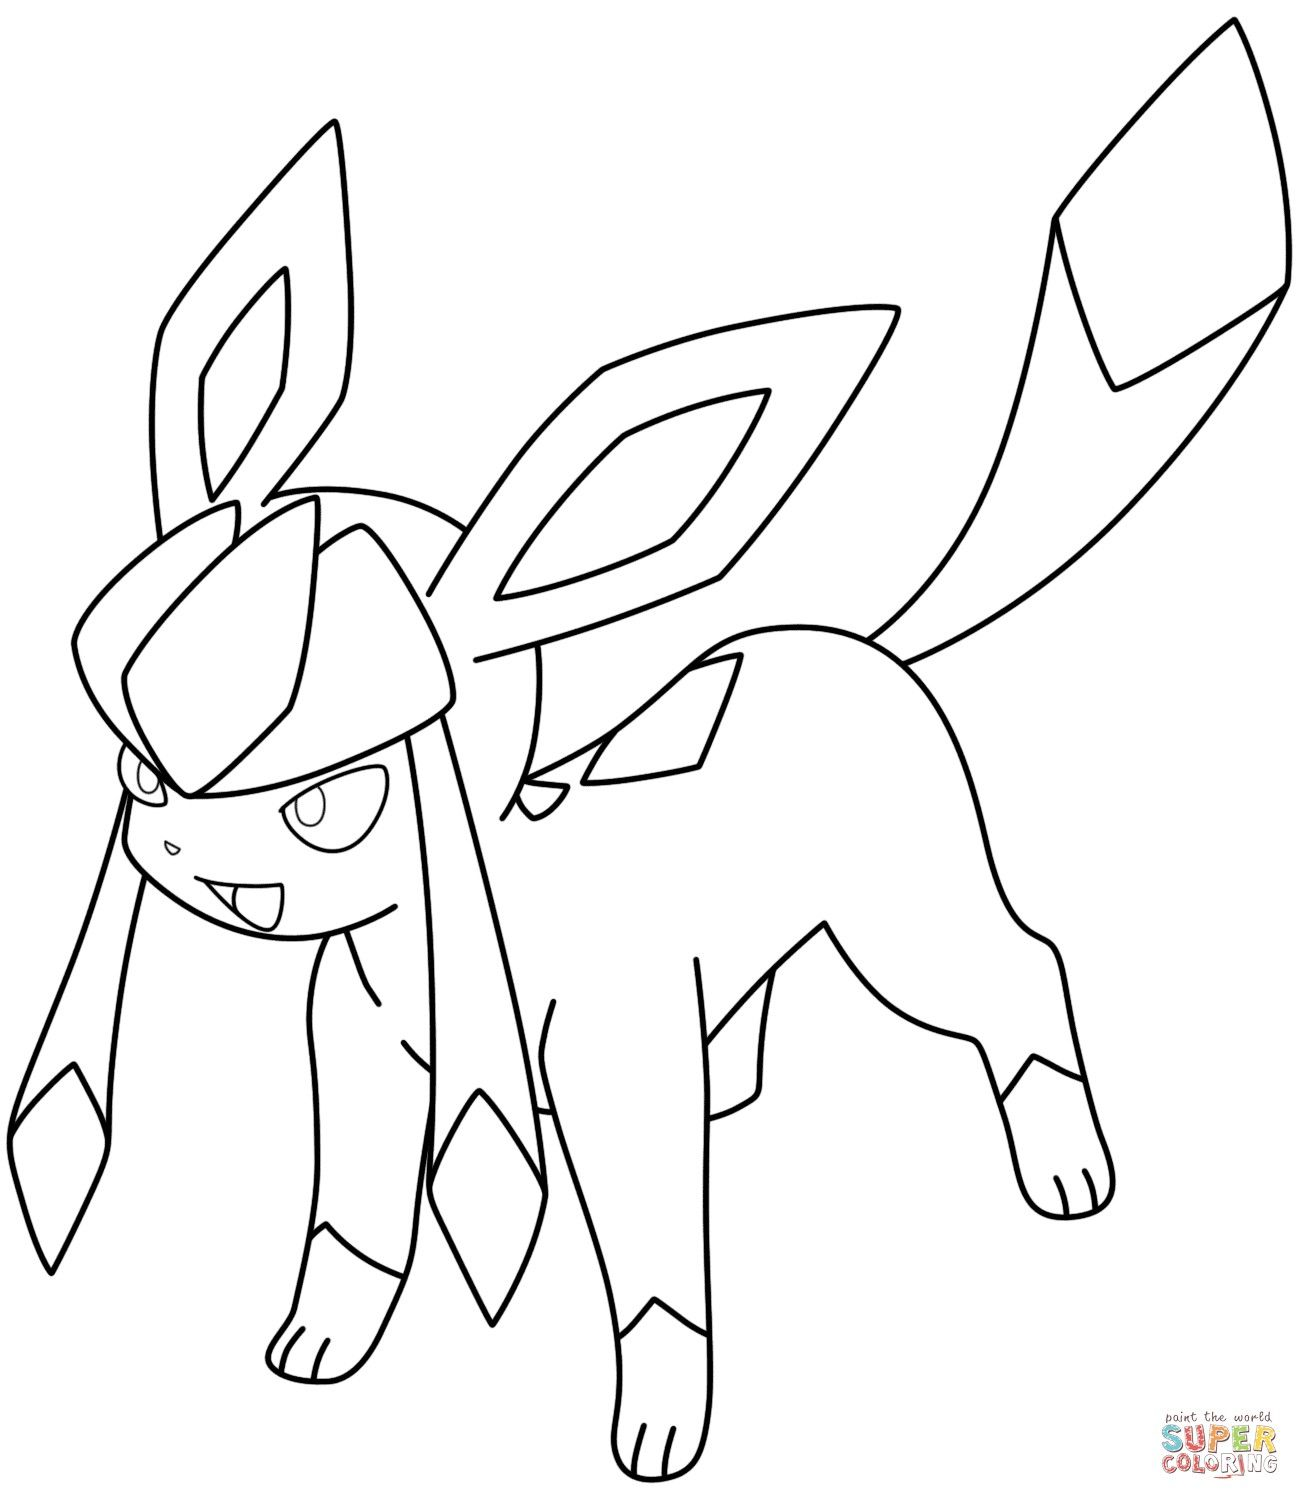 Pokemon Coloring Pages Glaceon From The Thousand Photographs On Line About Pokemon Coloring P Pokemon Coloring Pokemon Coloring Sheets Pokemon Coloring Pages